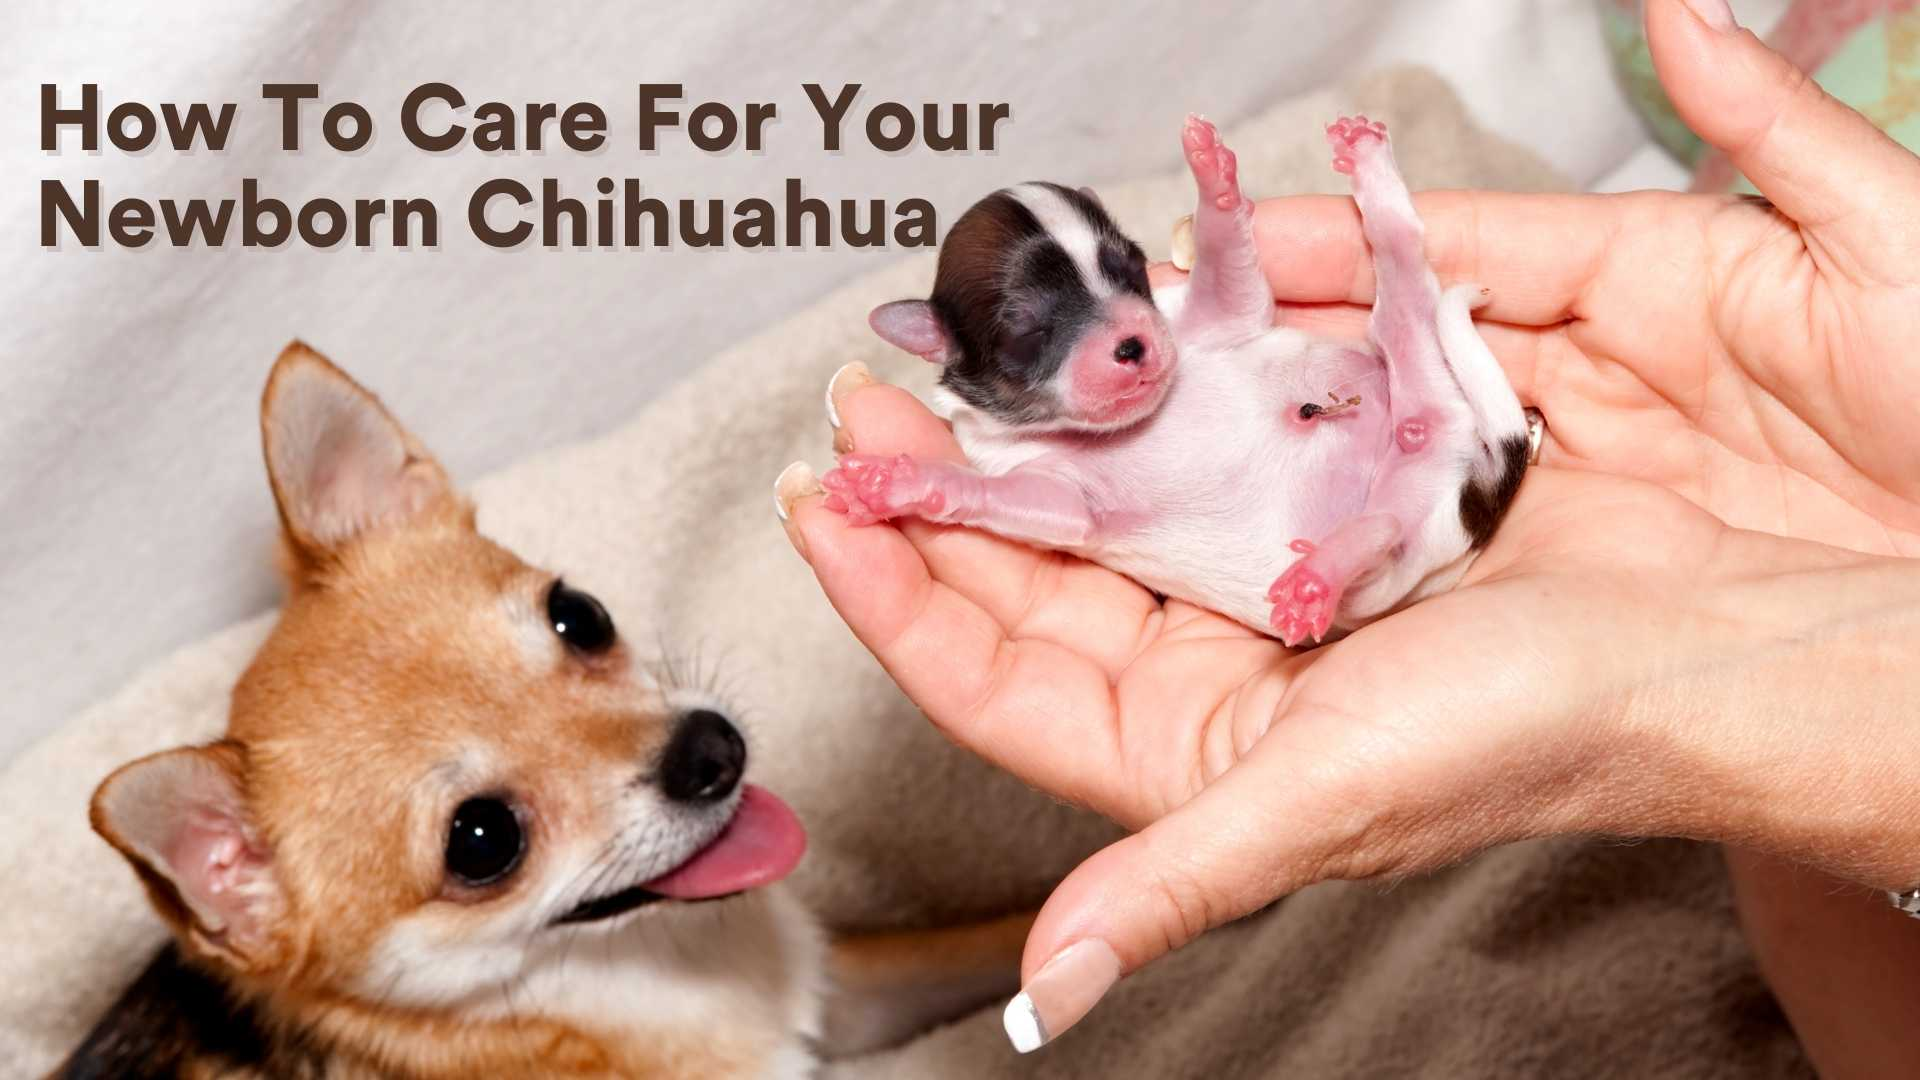 How To Care For Your Newborn Chihuahua